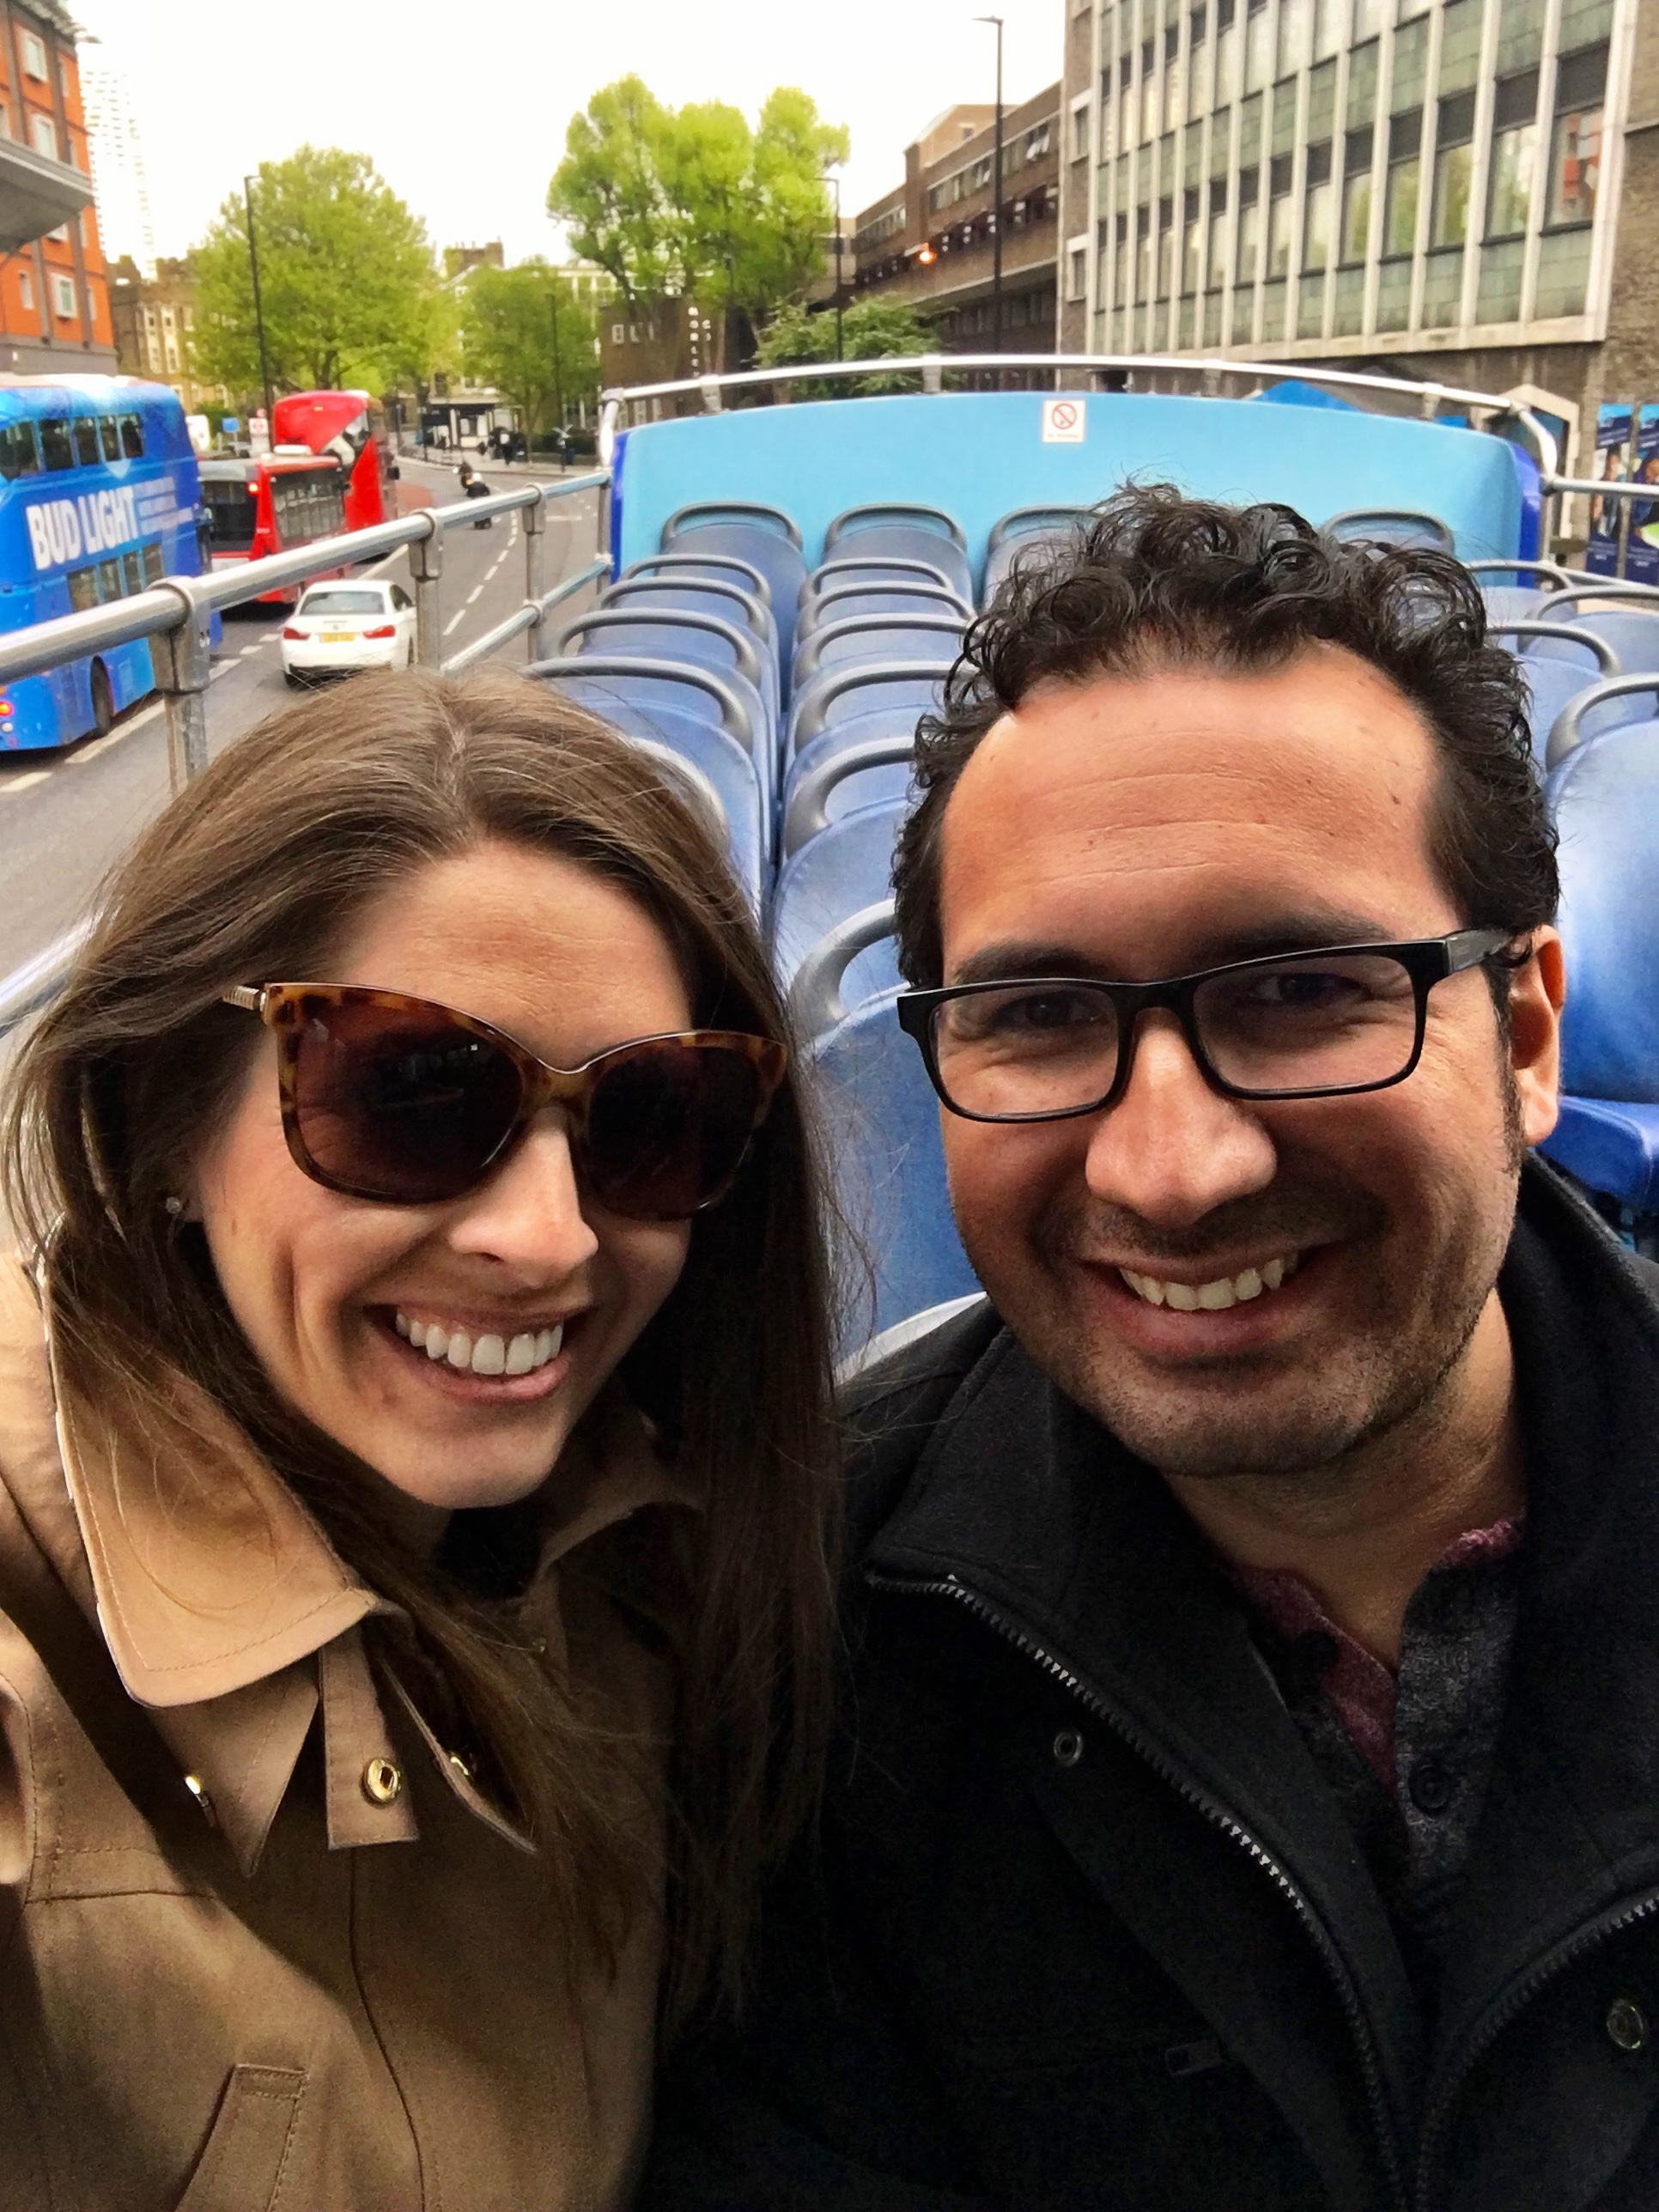 Double decker bus tour in London